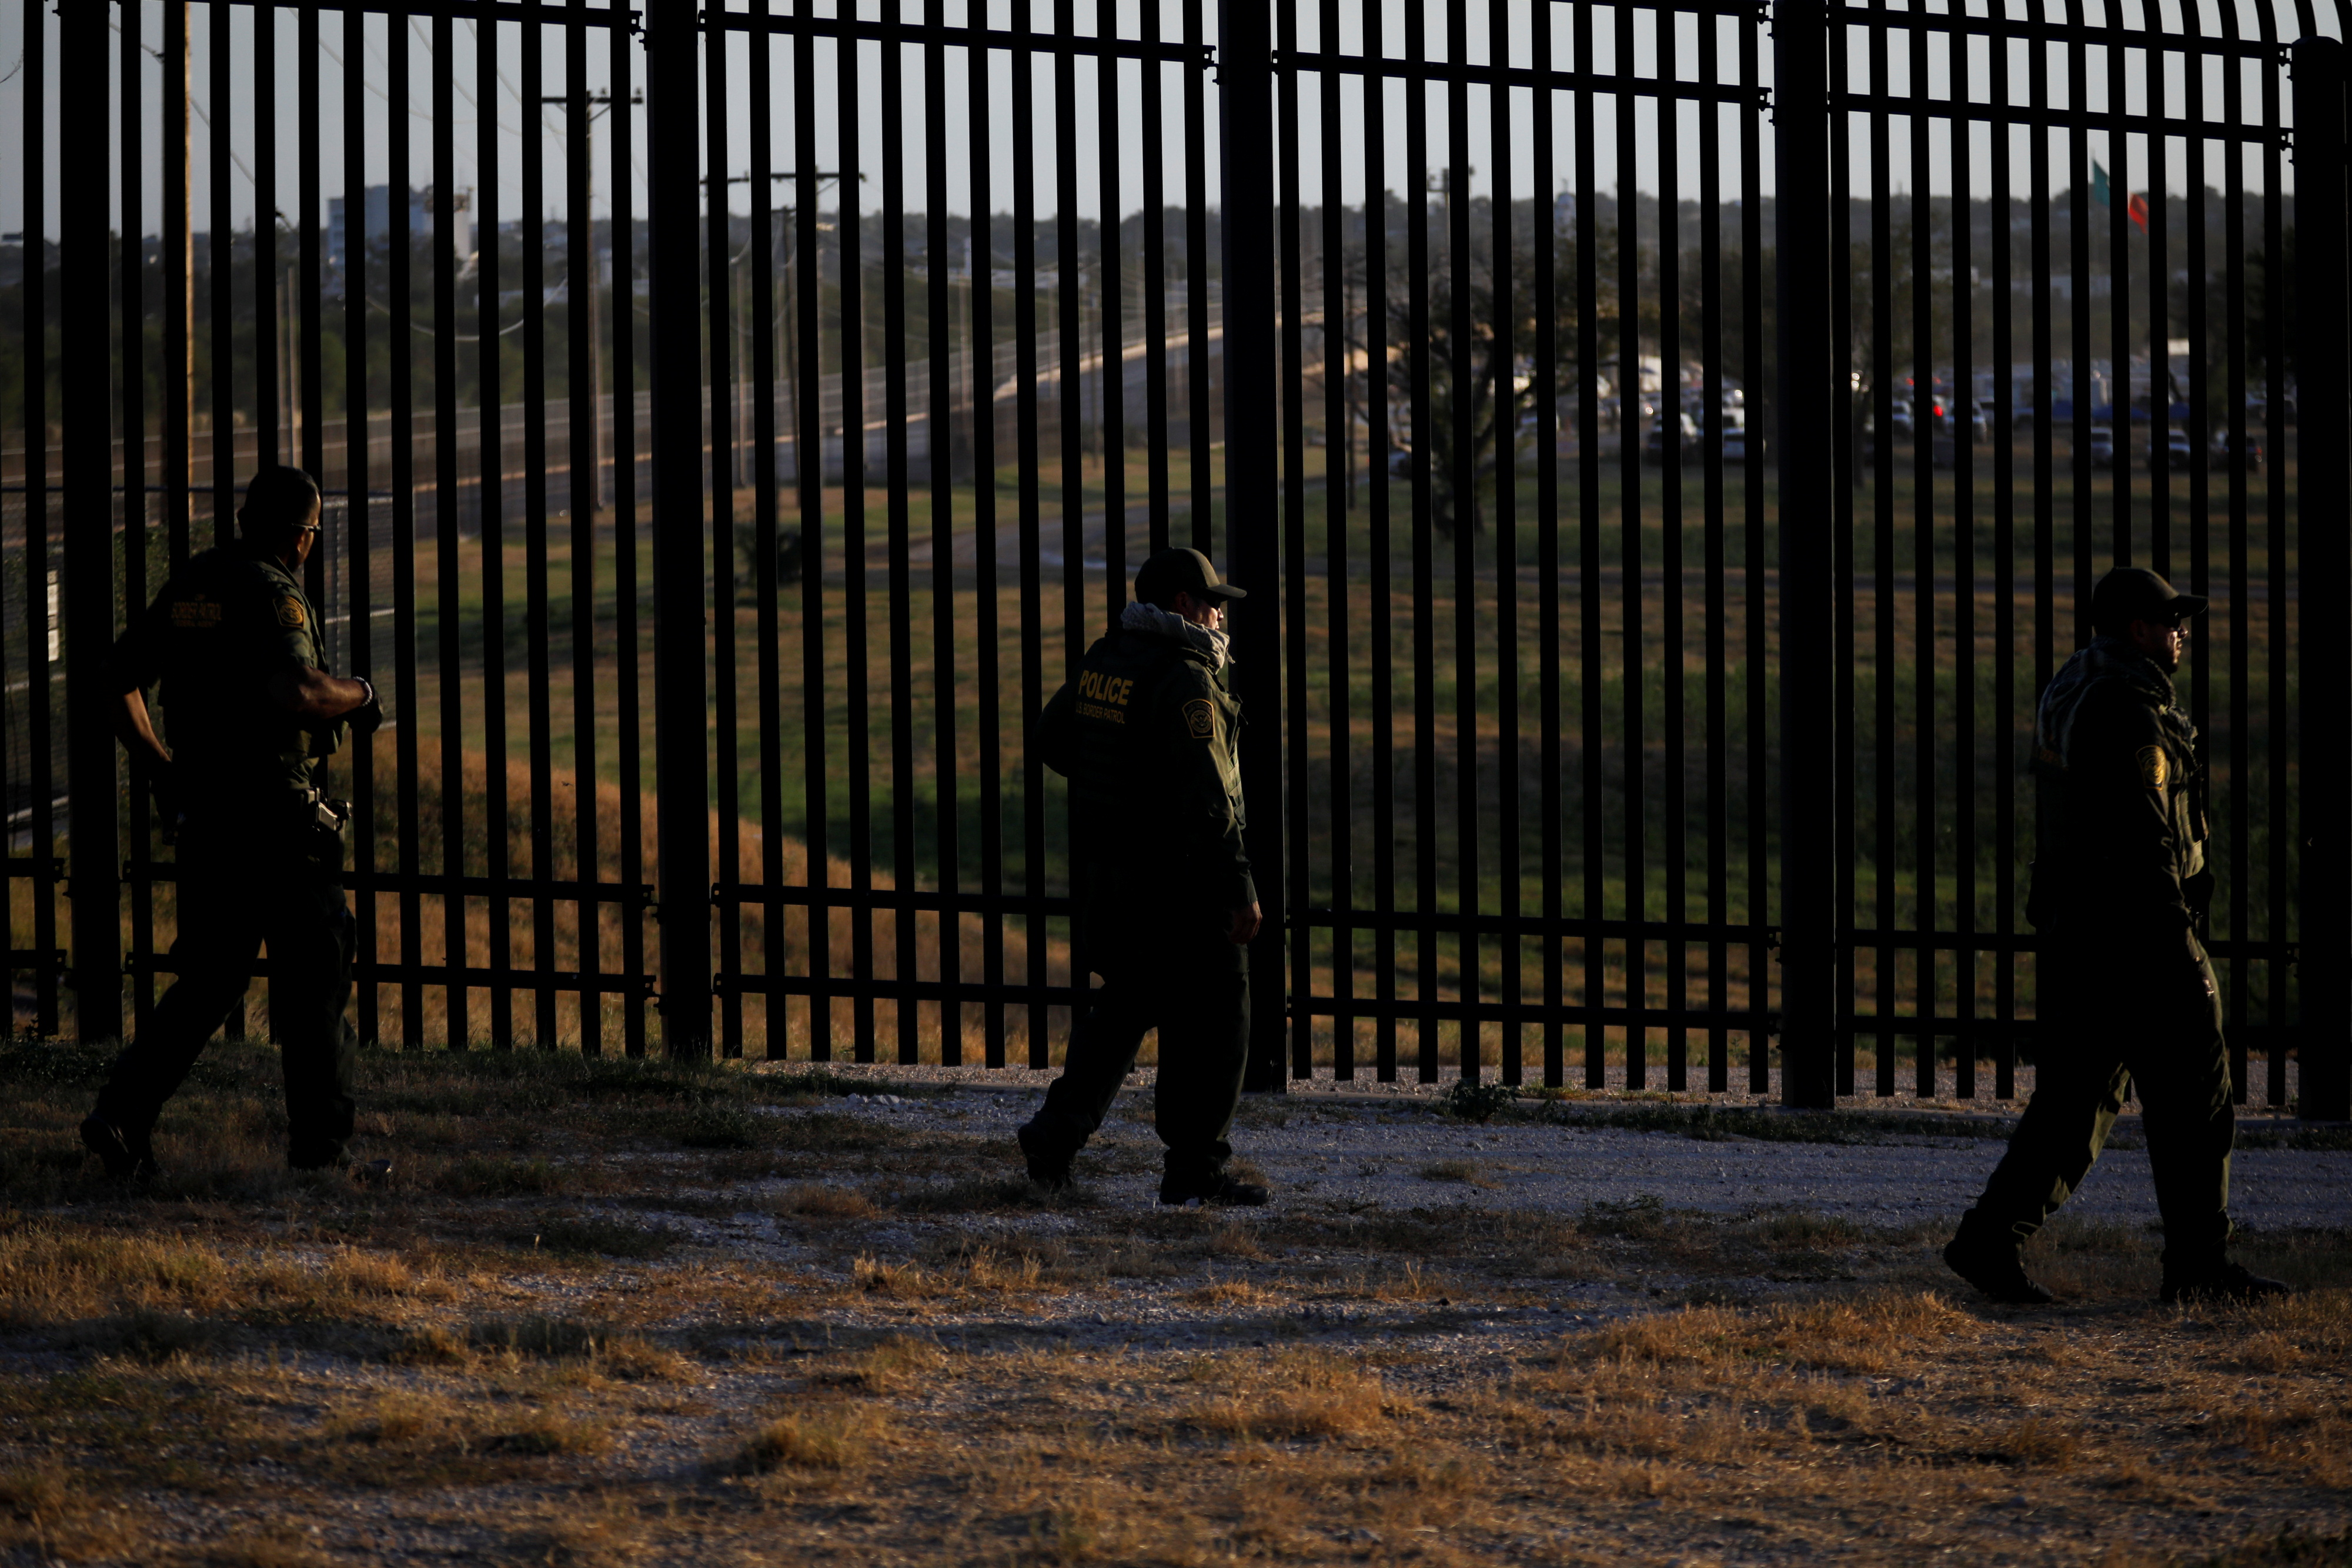 U.S. Border Patrol officers walk along the perimeter fence near the International Bridge between Mexico and the U.S., where migrants seeking asylum in the U.S. are waiting to be processed, in Del Rio, Texas, U.S., September 20, 2021. REUTERS/Marco Bello